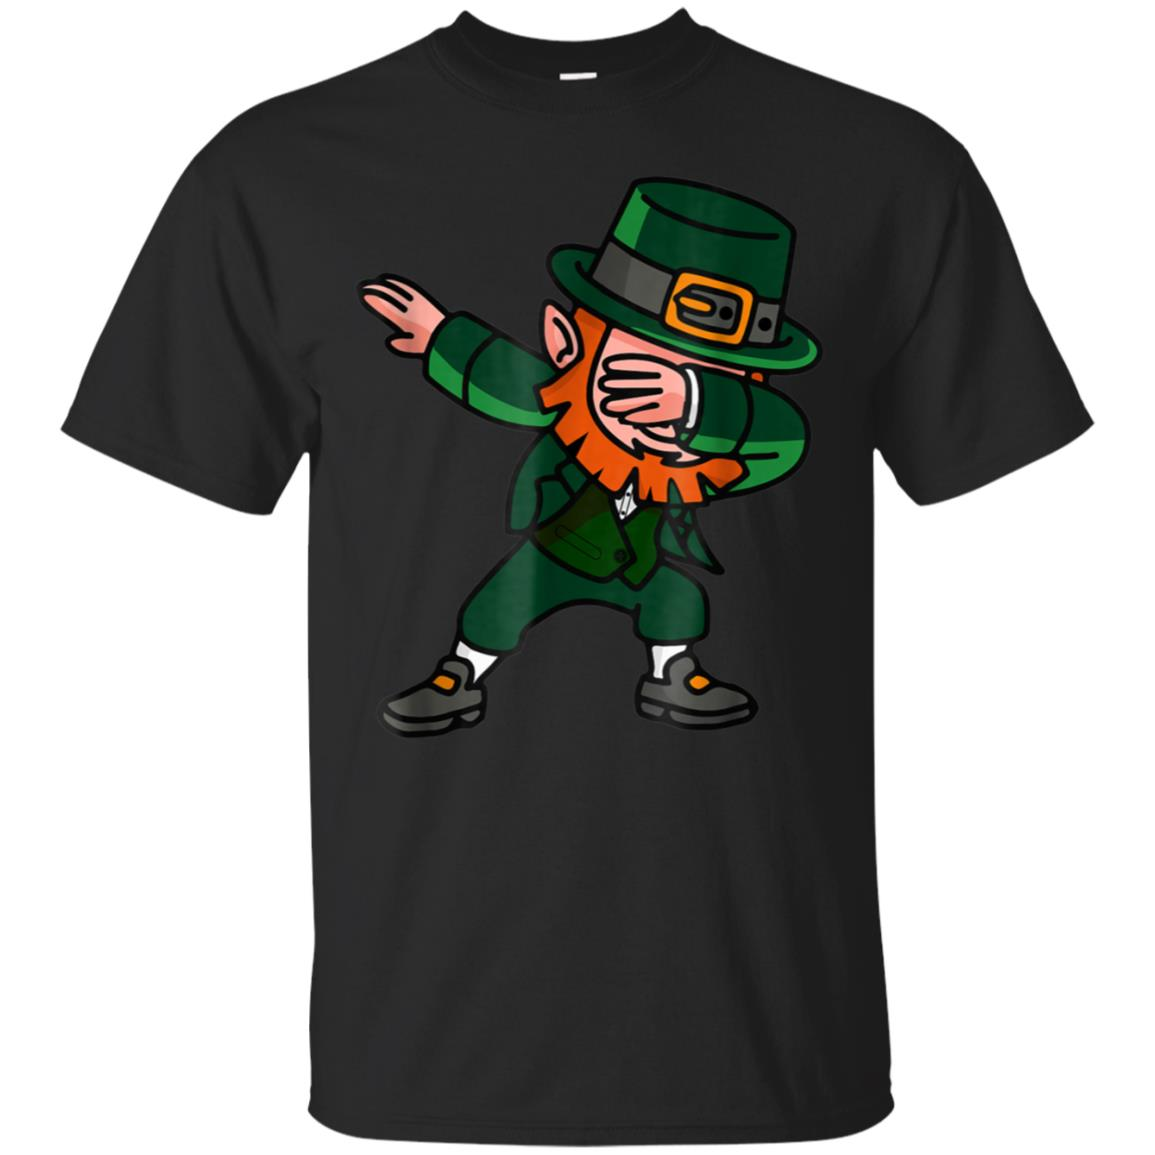 Dabbing Leprechaun Shirt for St Patricks Day Gift 99promocode